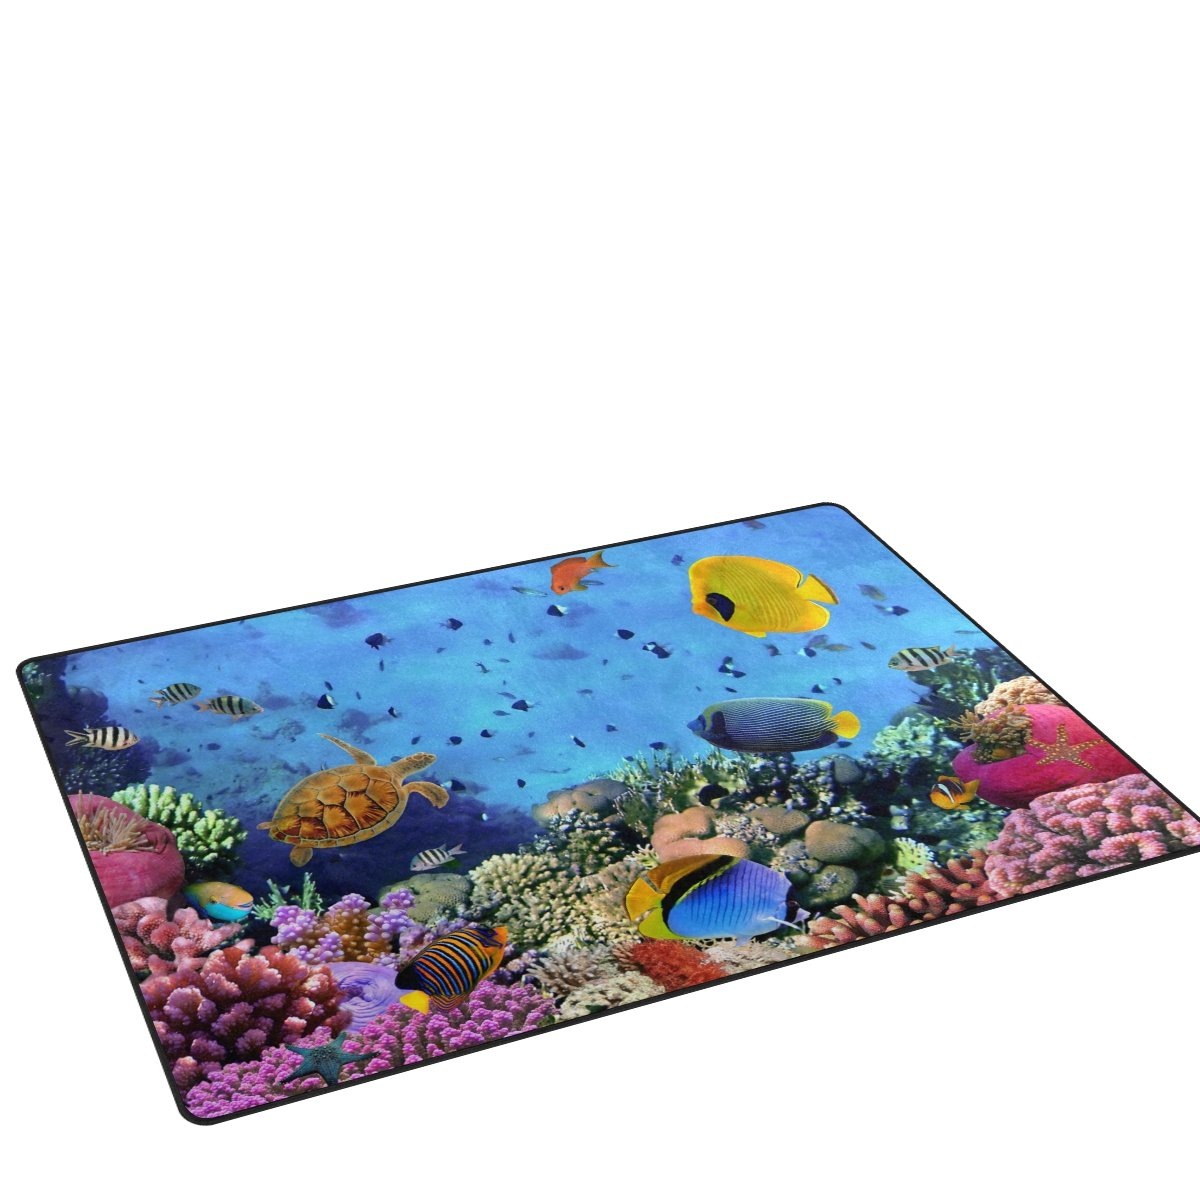 Soft Area Rugs Non-Slip Floor Mat Resting Area Doormats YZGO Coral Colony Red Sea Turtle